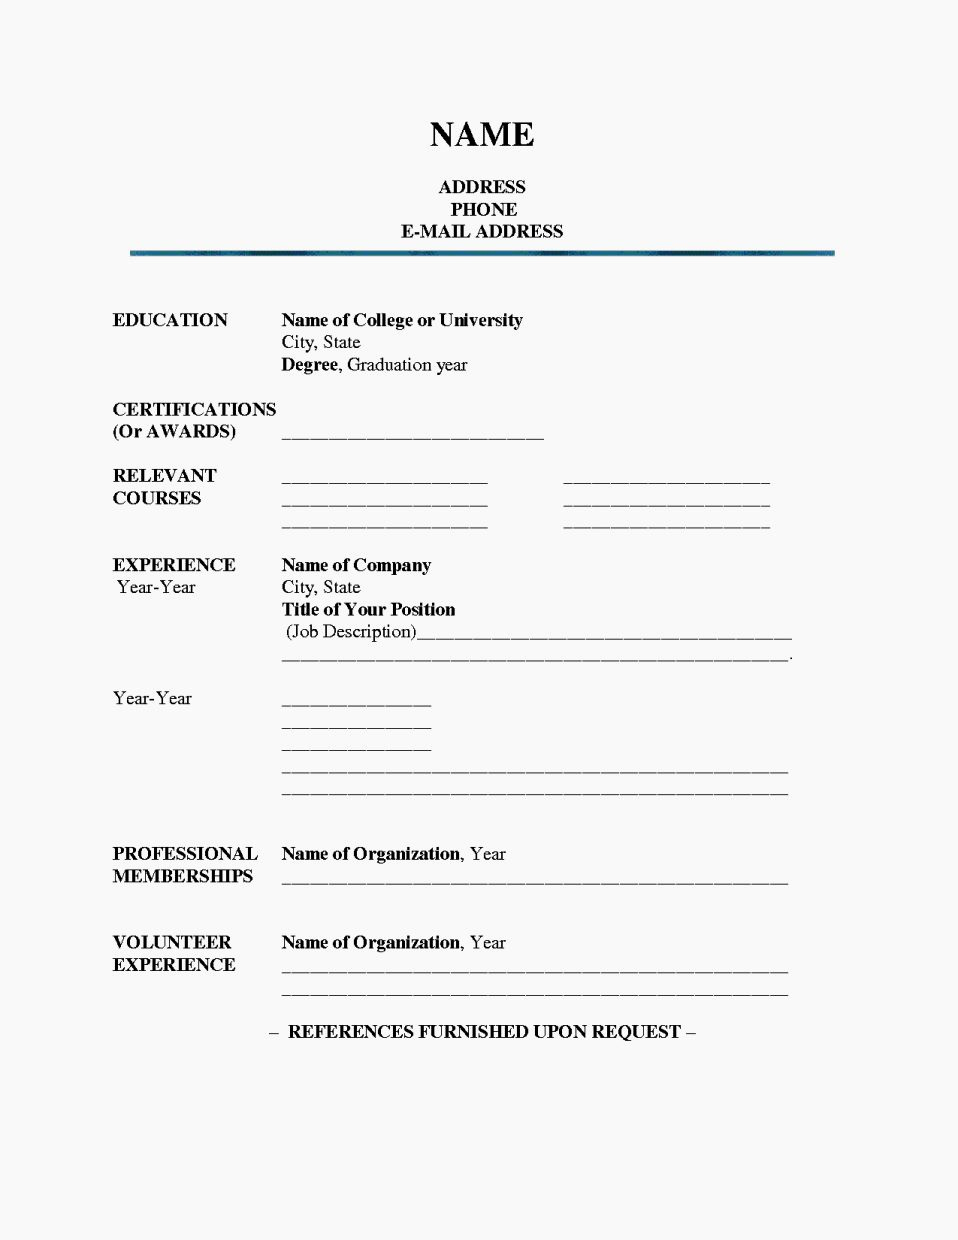 Fill In The Blank Resume Pdf Or Fill In Blank Printable Resume Resume Template